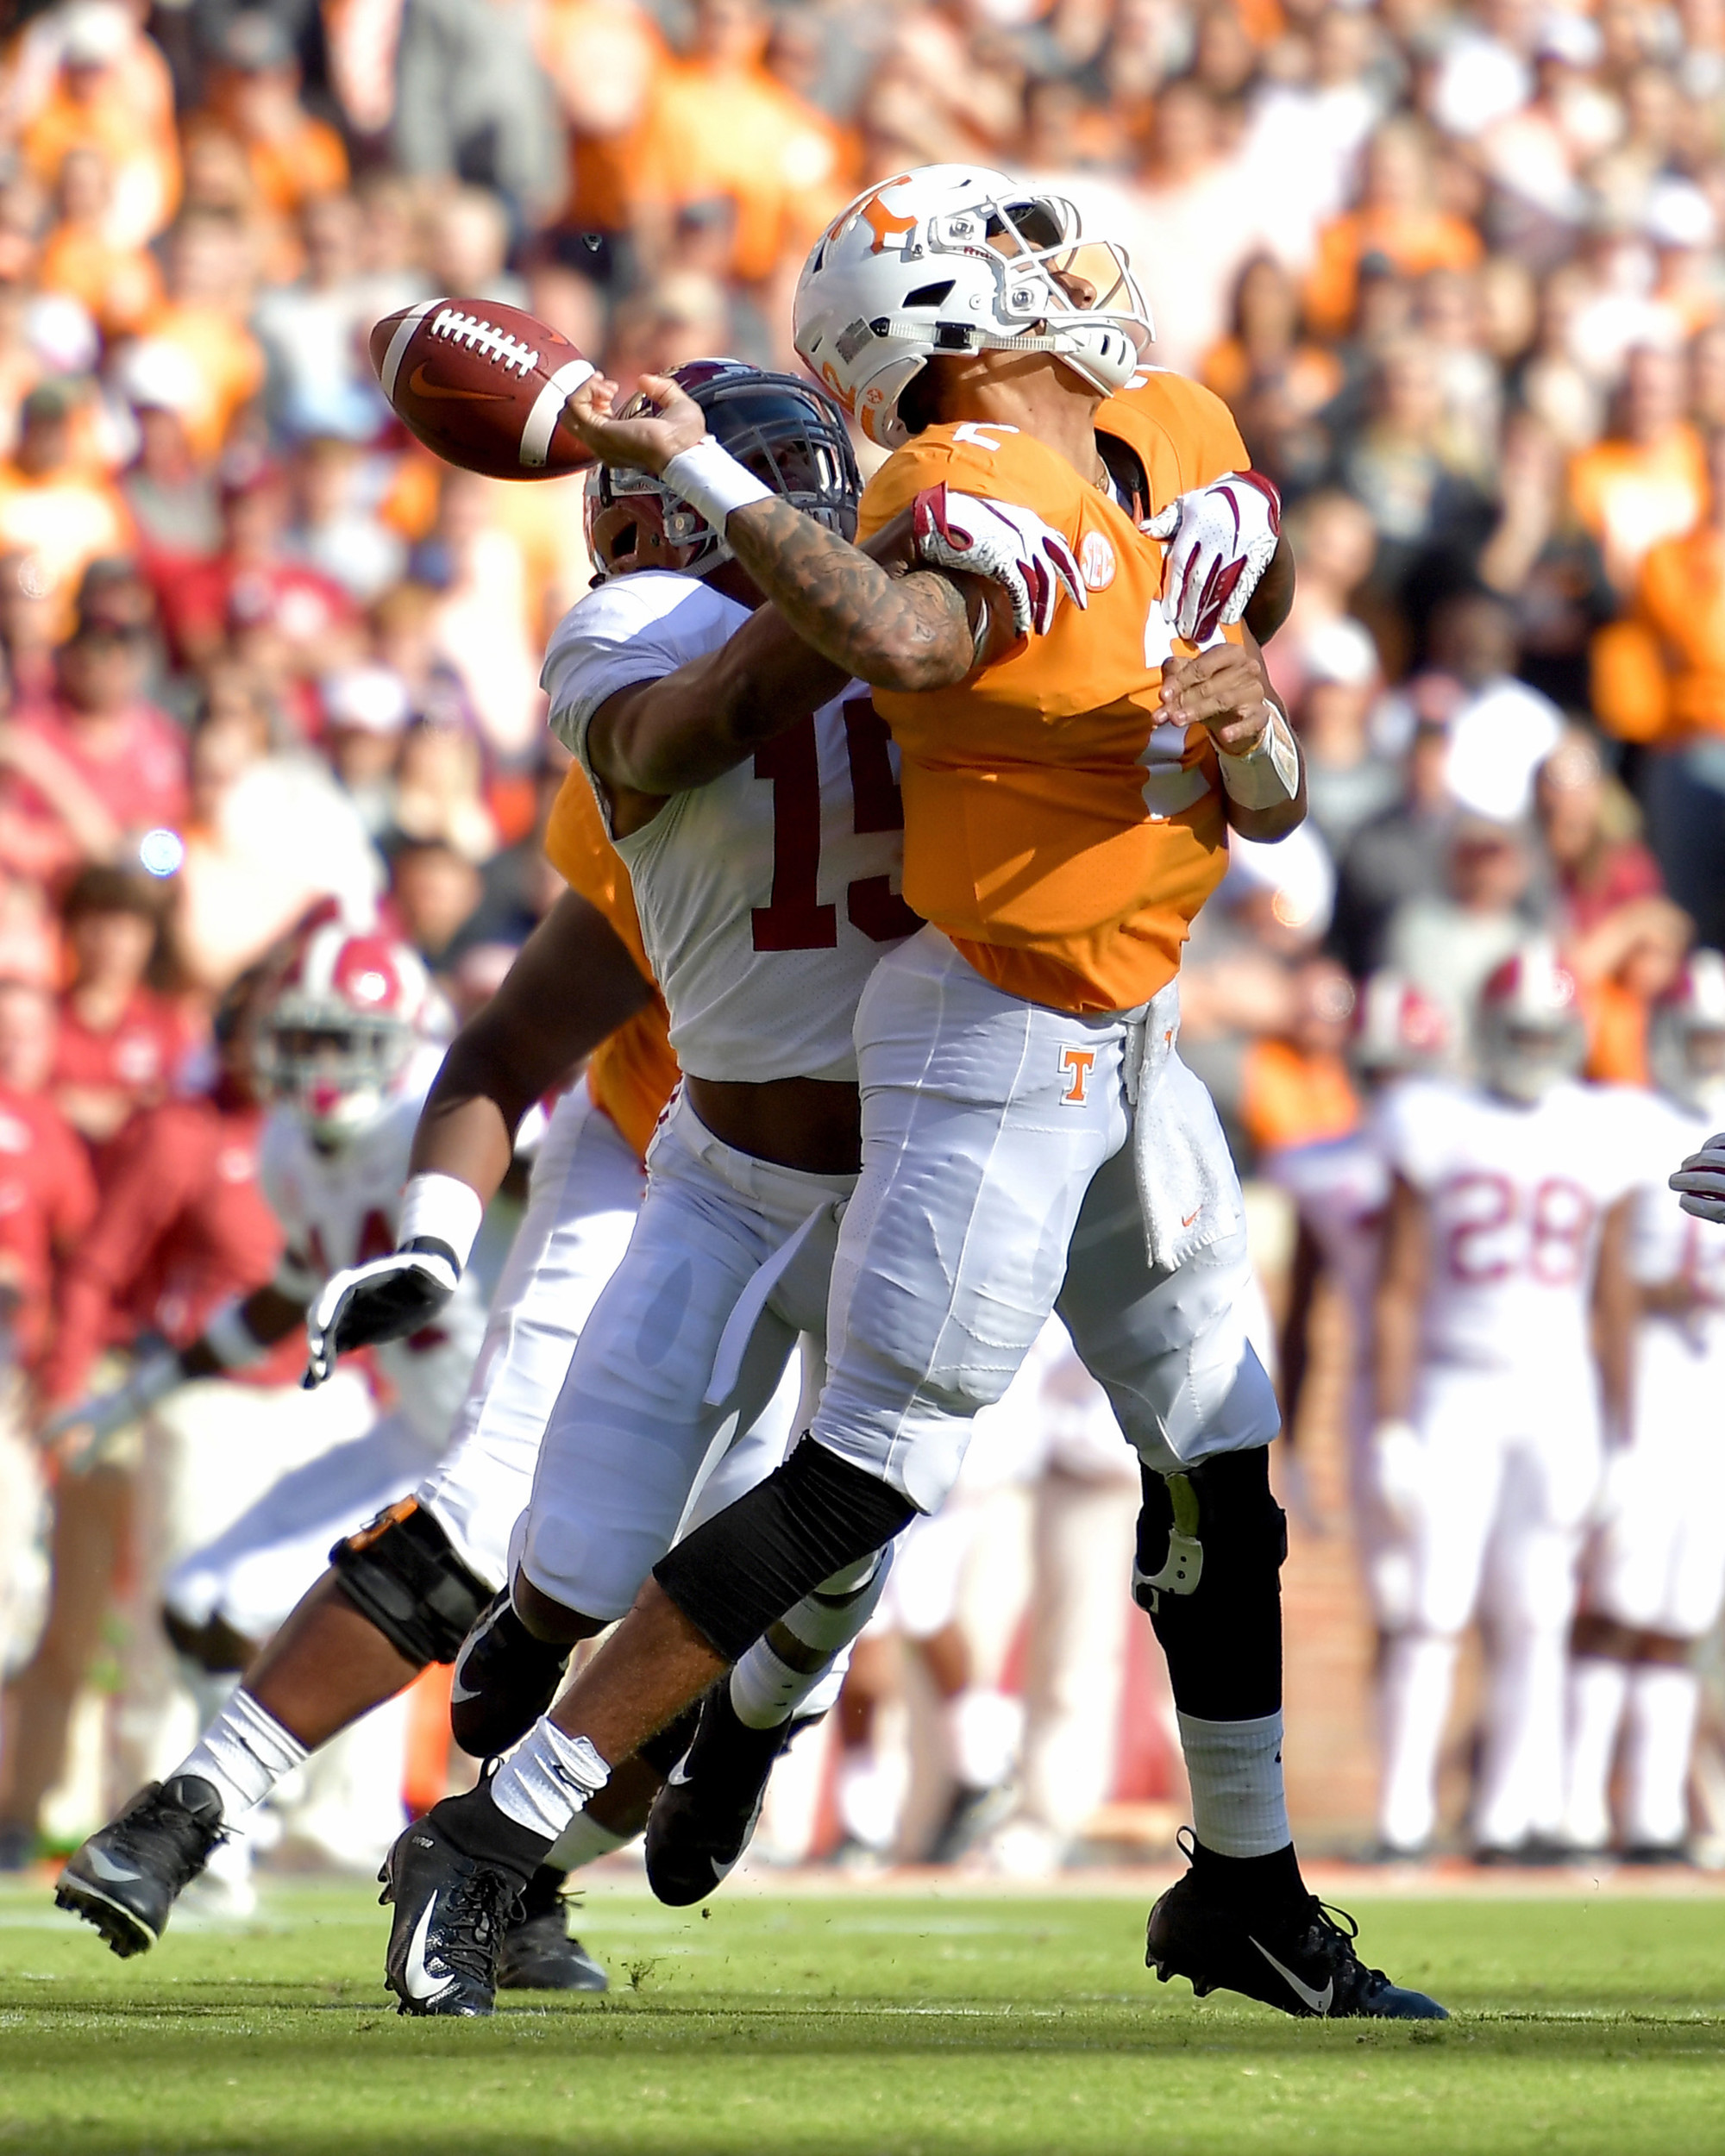 Tennessee Volunteers quarterback Jarrett Guarantano (2) is sacked by Alabama Crimson Tide defensive back Xavier McKinney (15) and fumbles the ball in the first quarter of the NCAA football game on Saturday, Oct. 20, 2018, at Neyland Stadium in Knoxville. Tenn. Alabama wins 58-21. (Photo by Lee Walls)